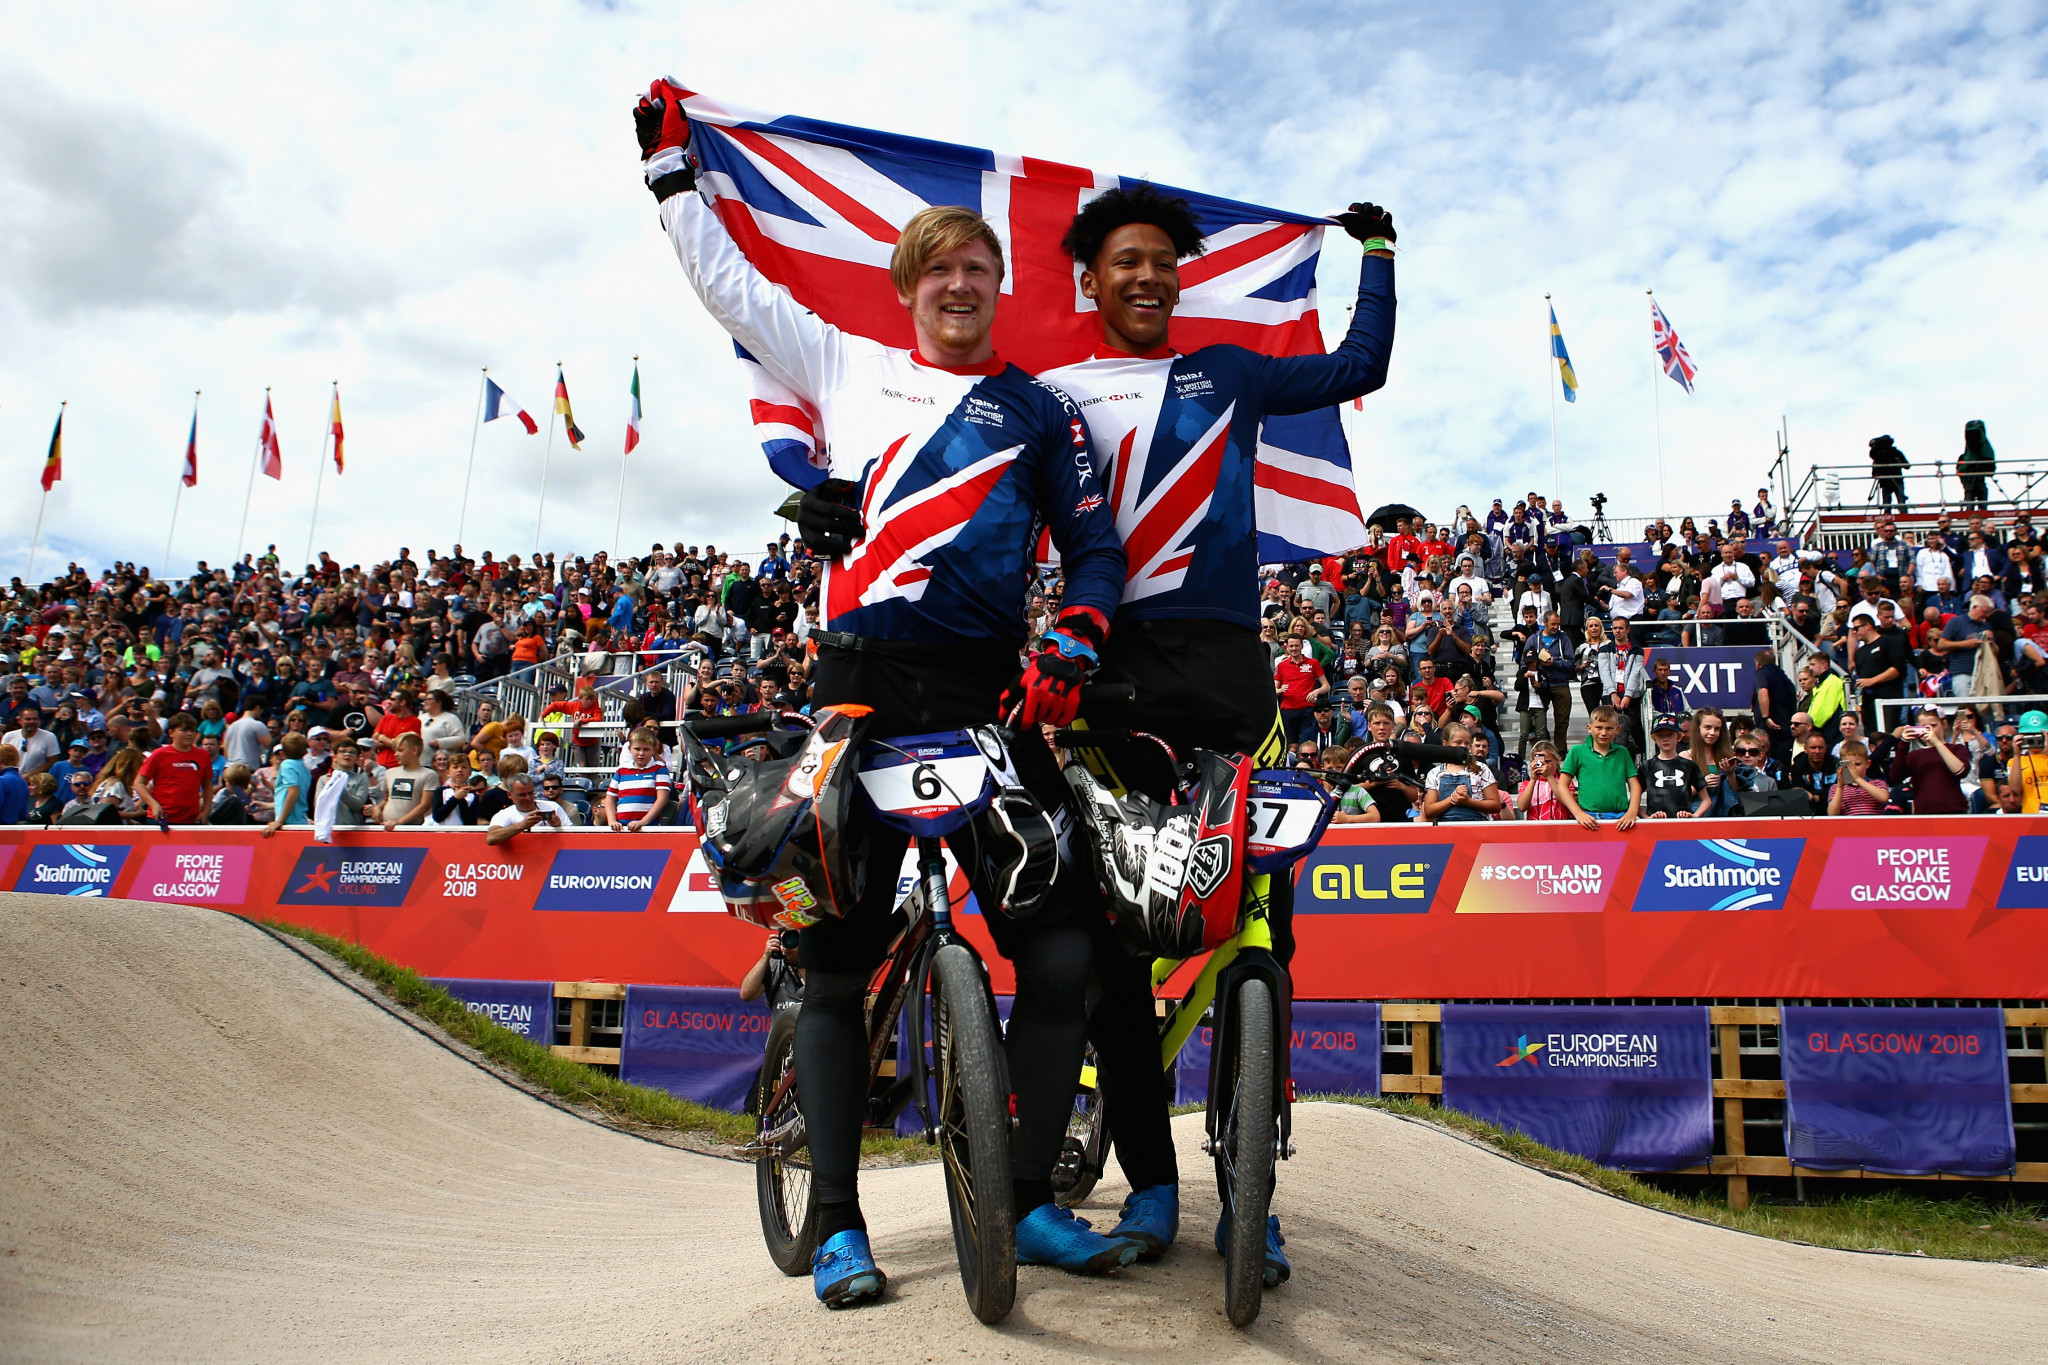 Evans leads British one-two finish in men's BMX event at Glasgow 2018 European Championships